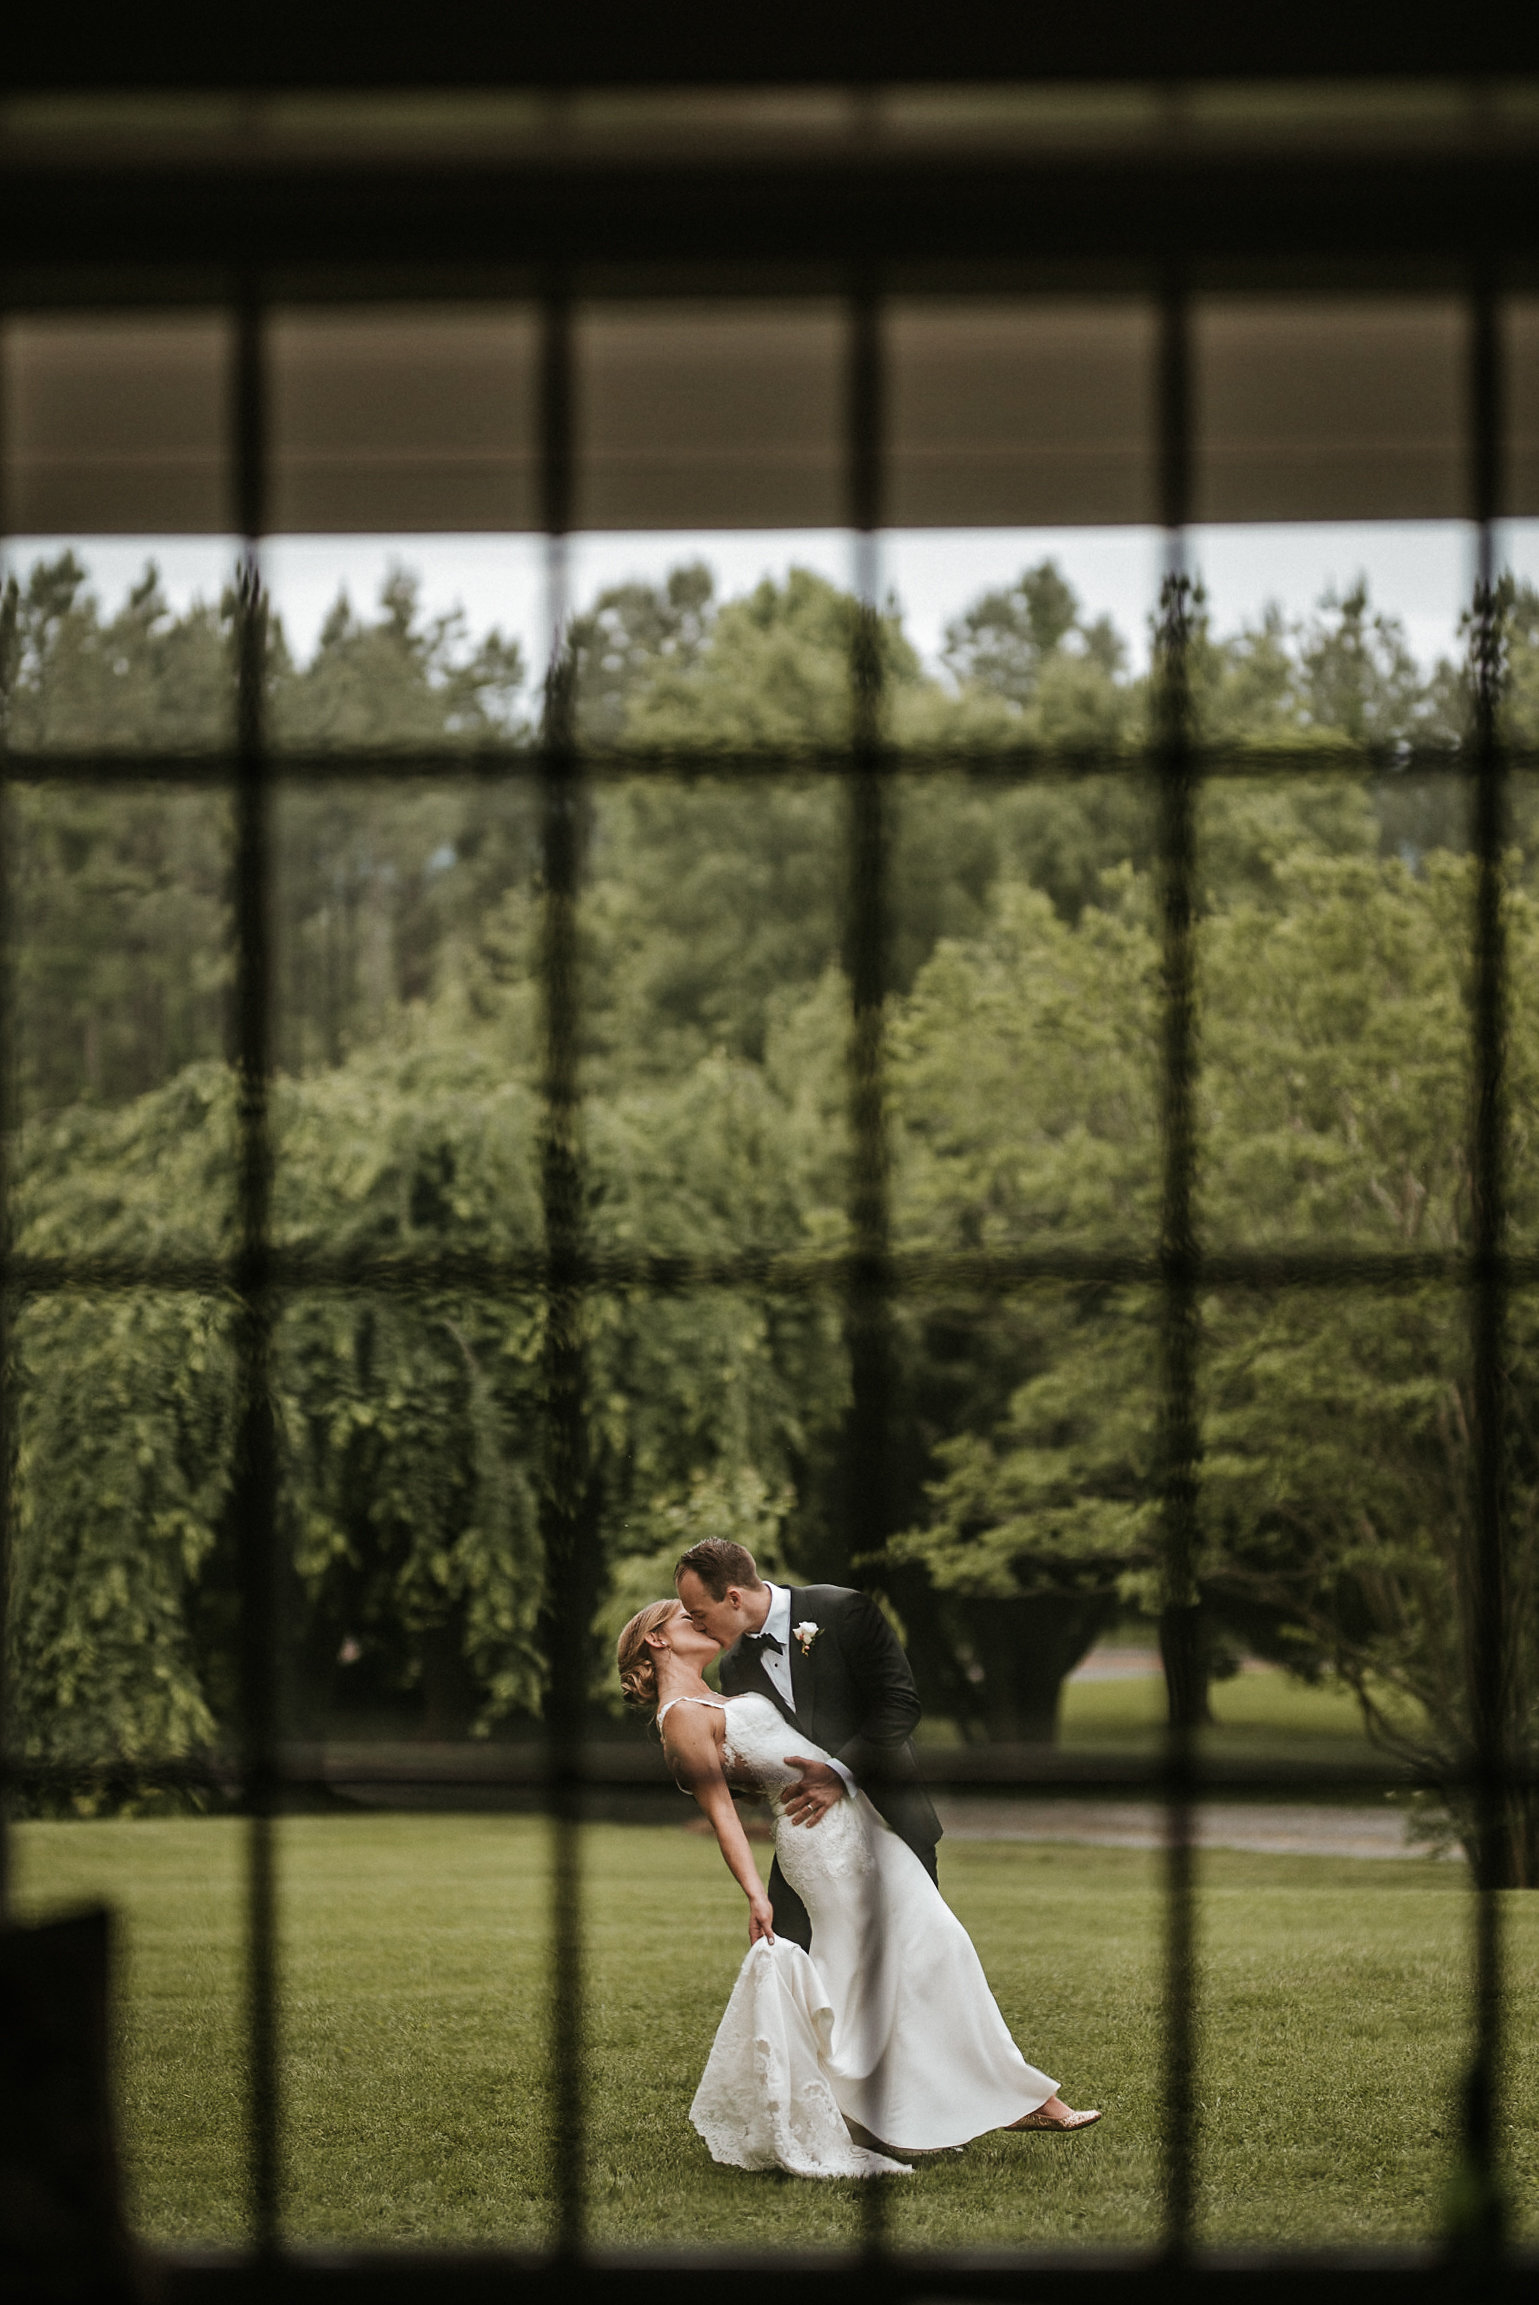 Bride and groom kissing outside window